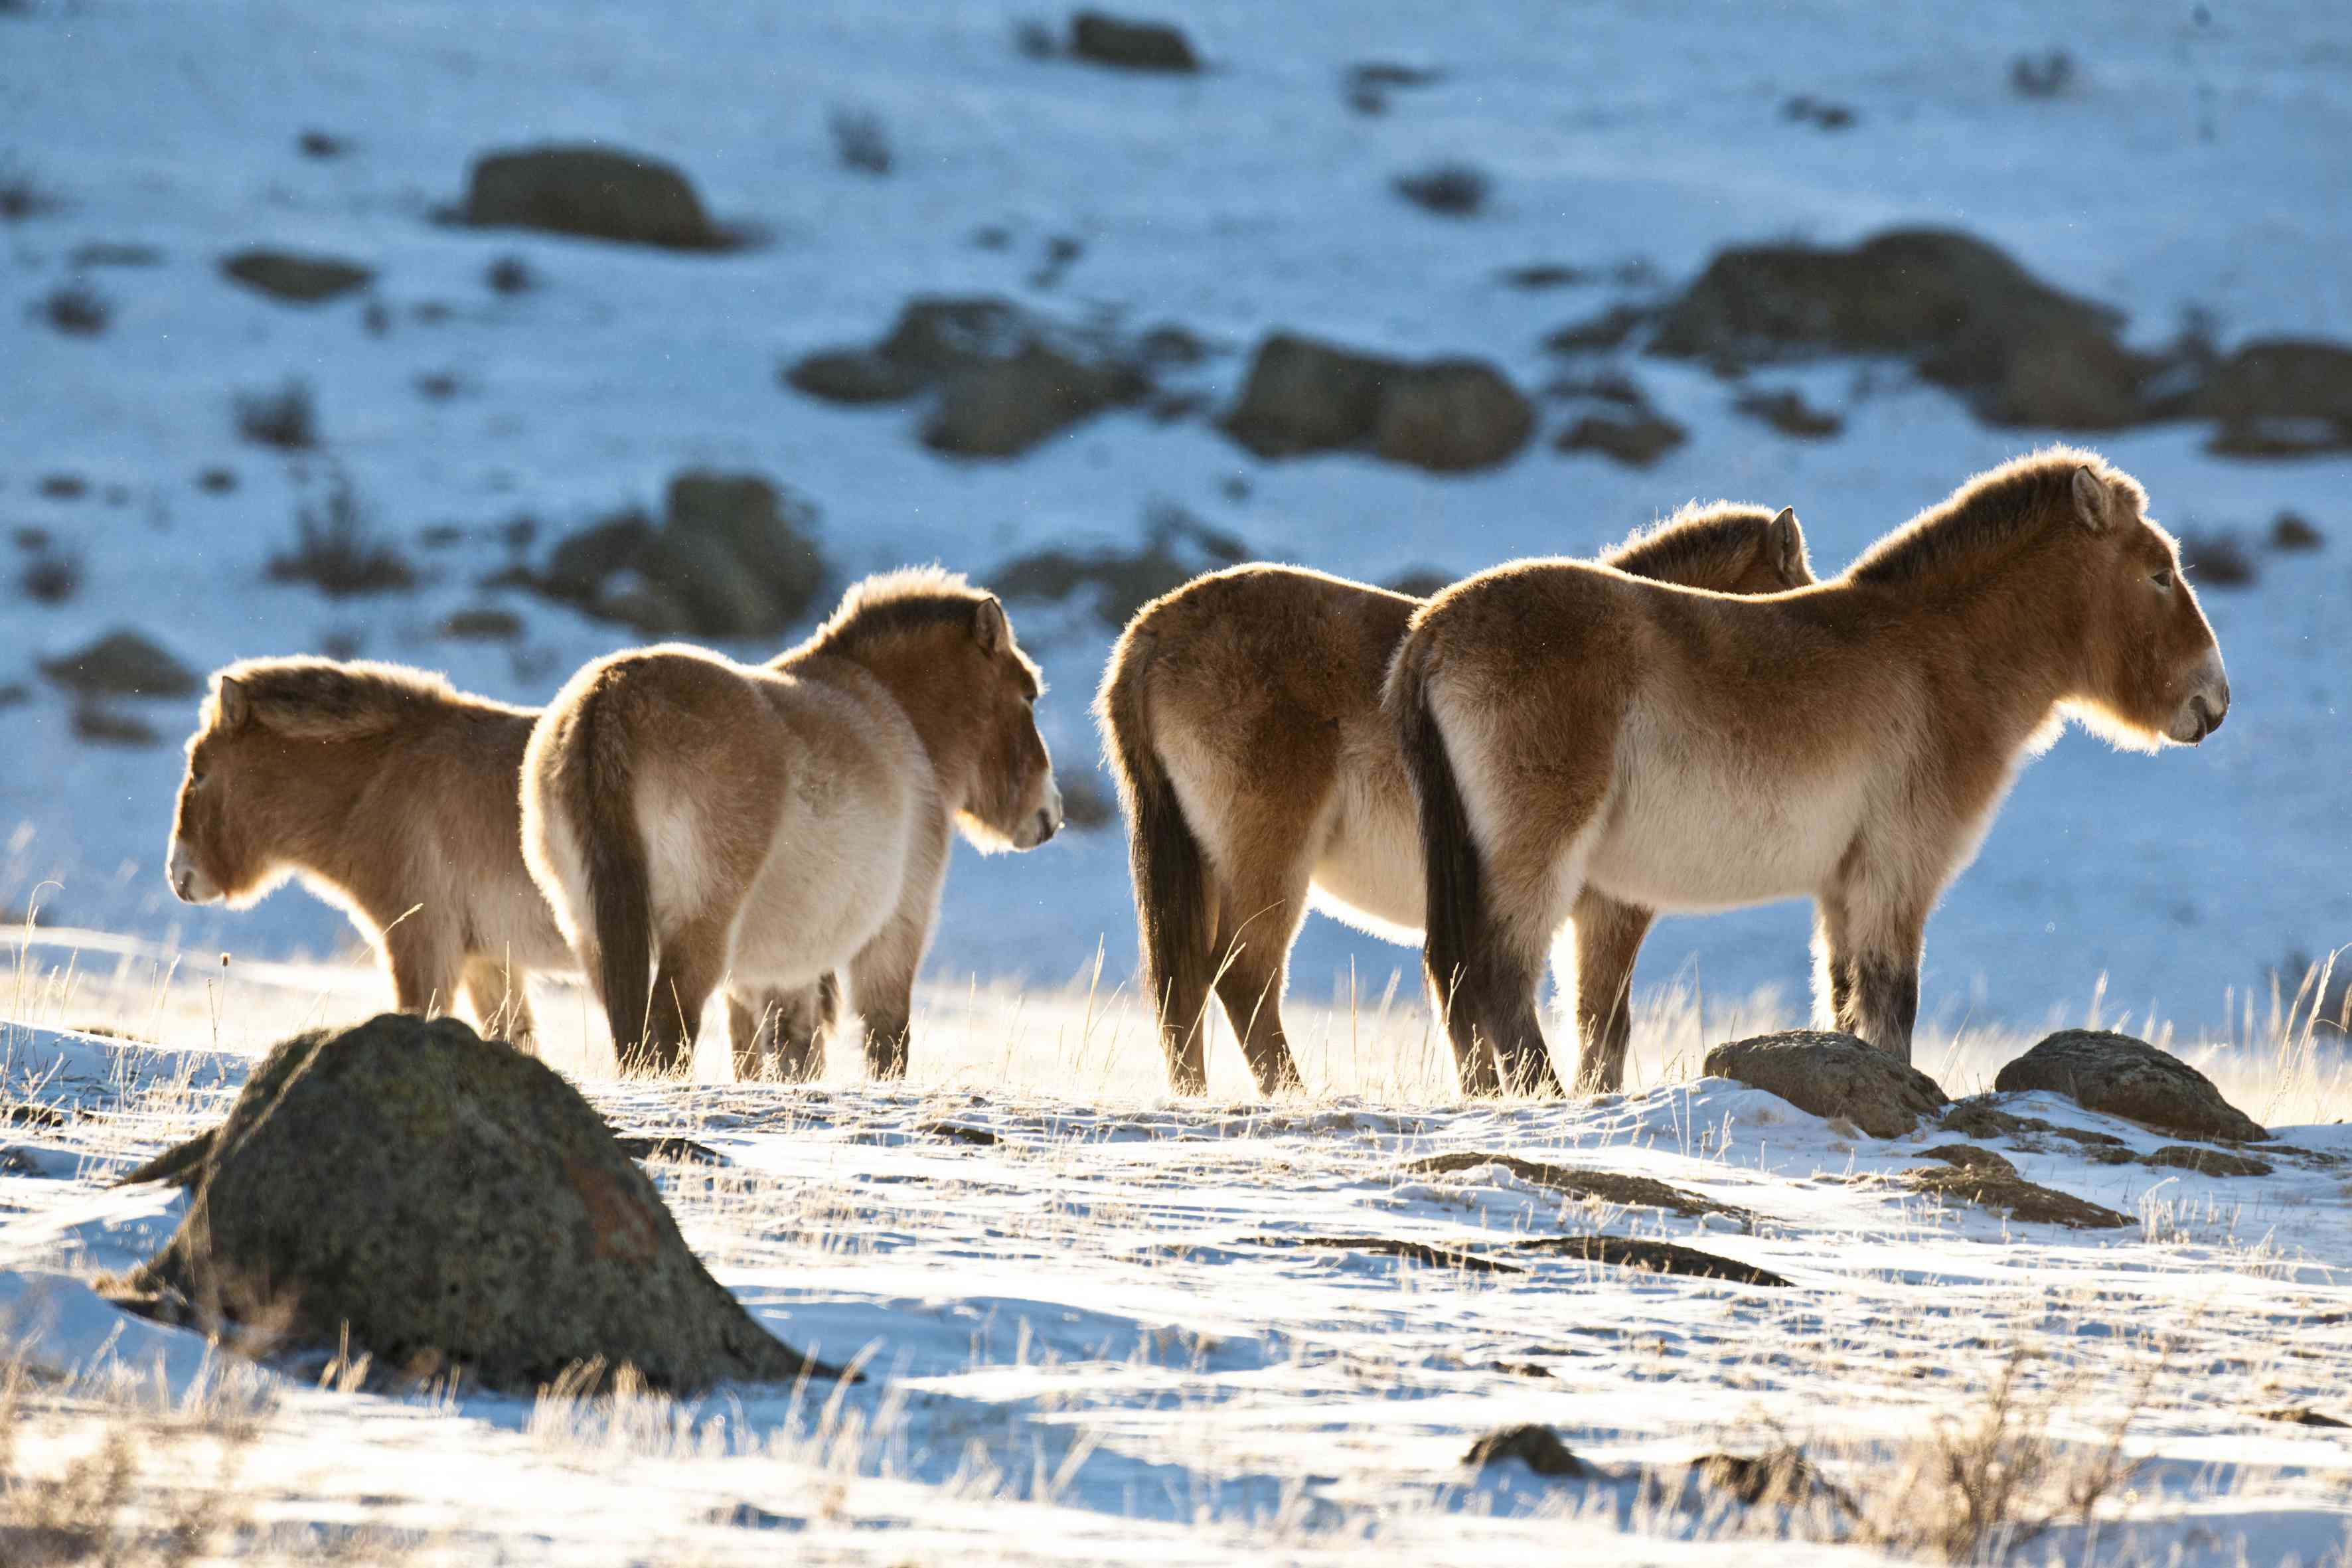 Przewalski's wild horses group with tails tucked close to bodies and backs to the wind